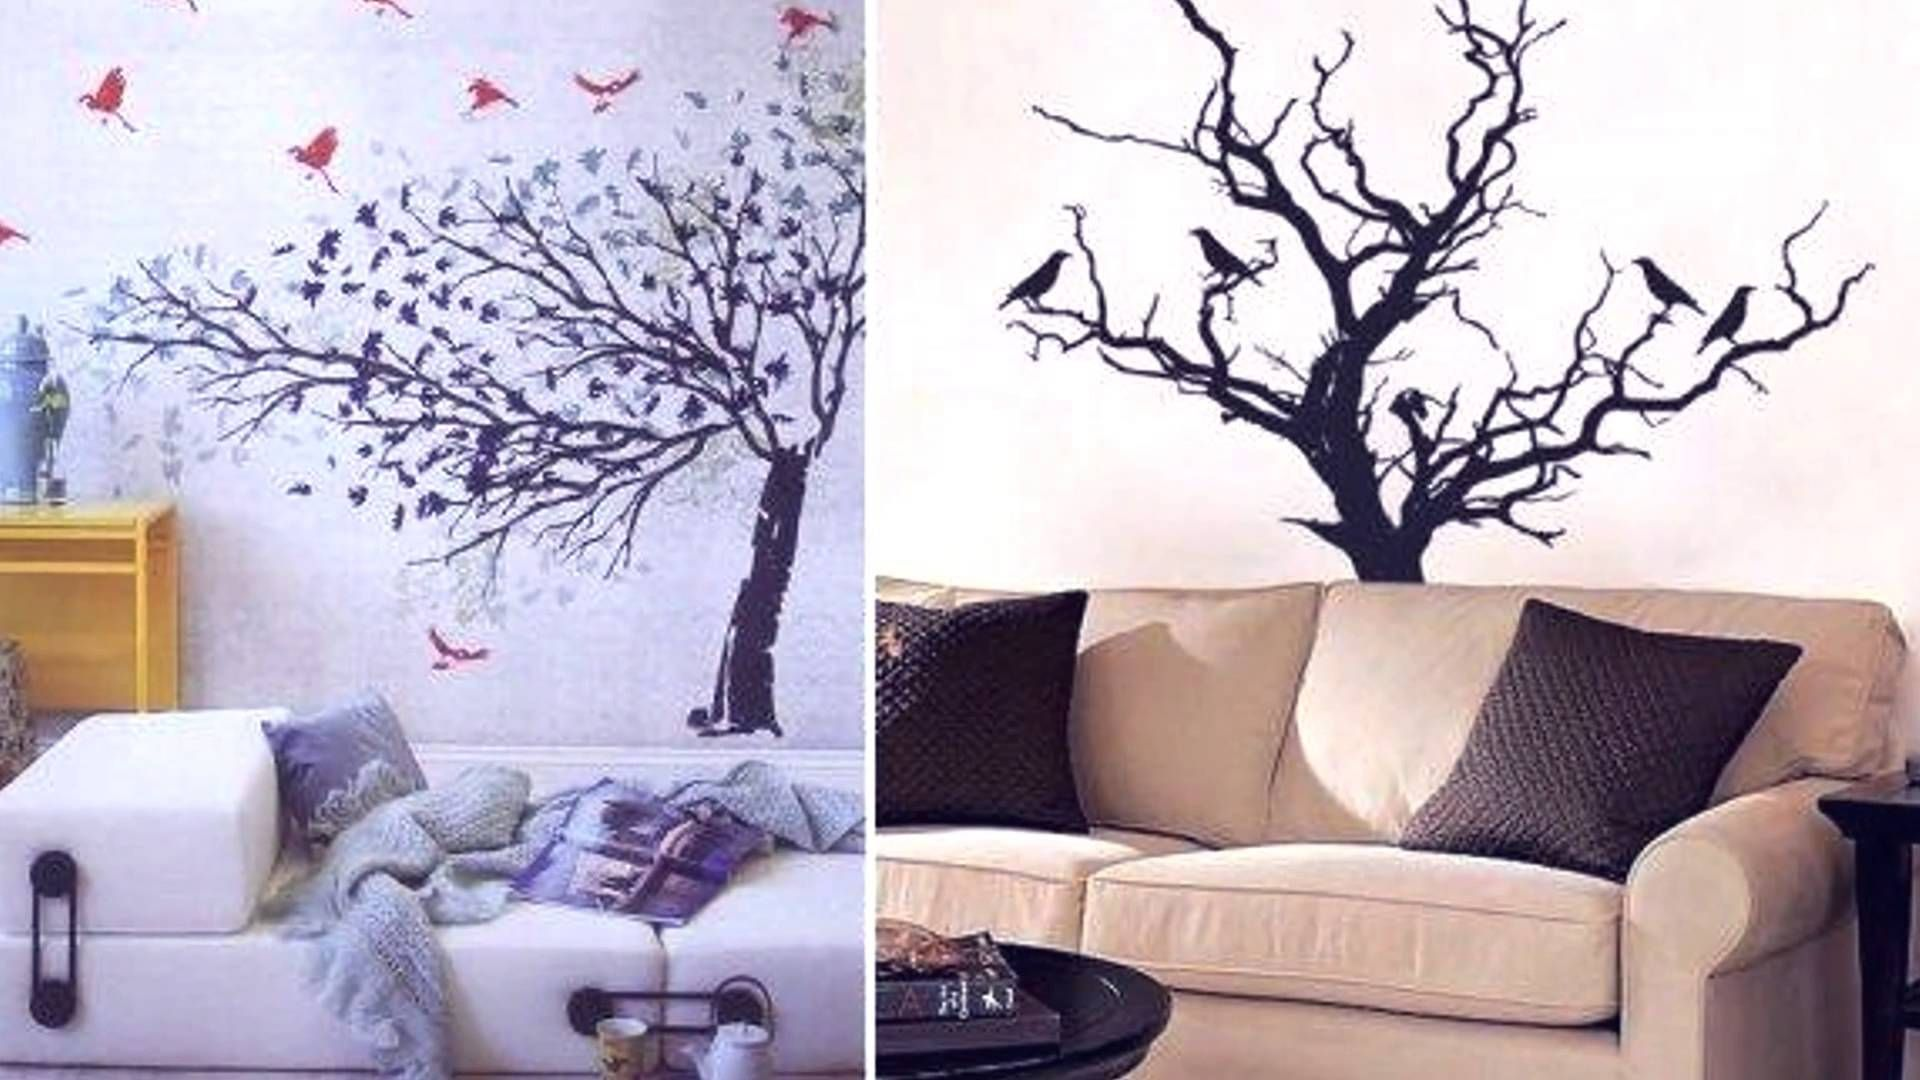 bedroom wall graphic design | Interior wall design, Interior ...